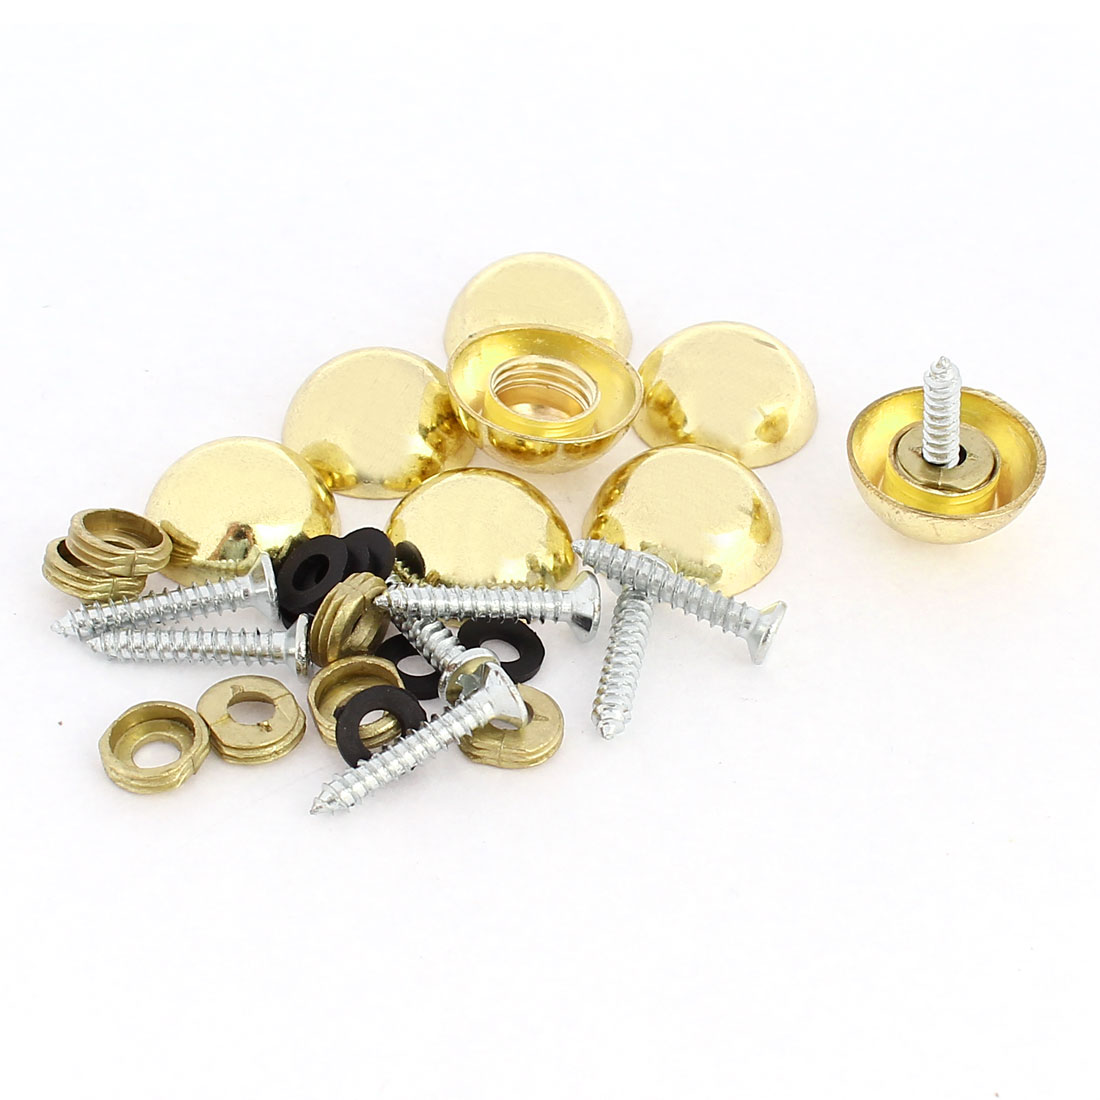 8 Pcs 18mm Dia 10mm Height Zinc Alloy Dome Mirror Screw Cap Fittings Gold Tone